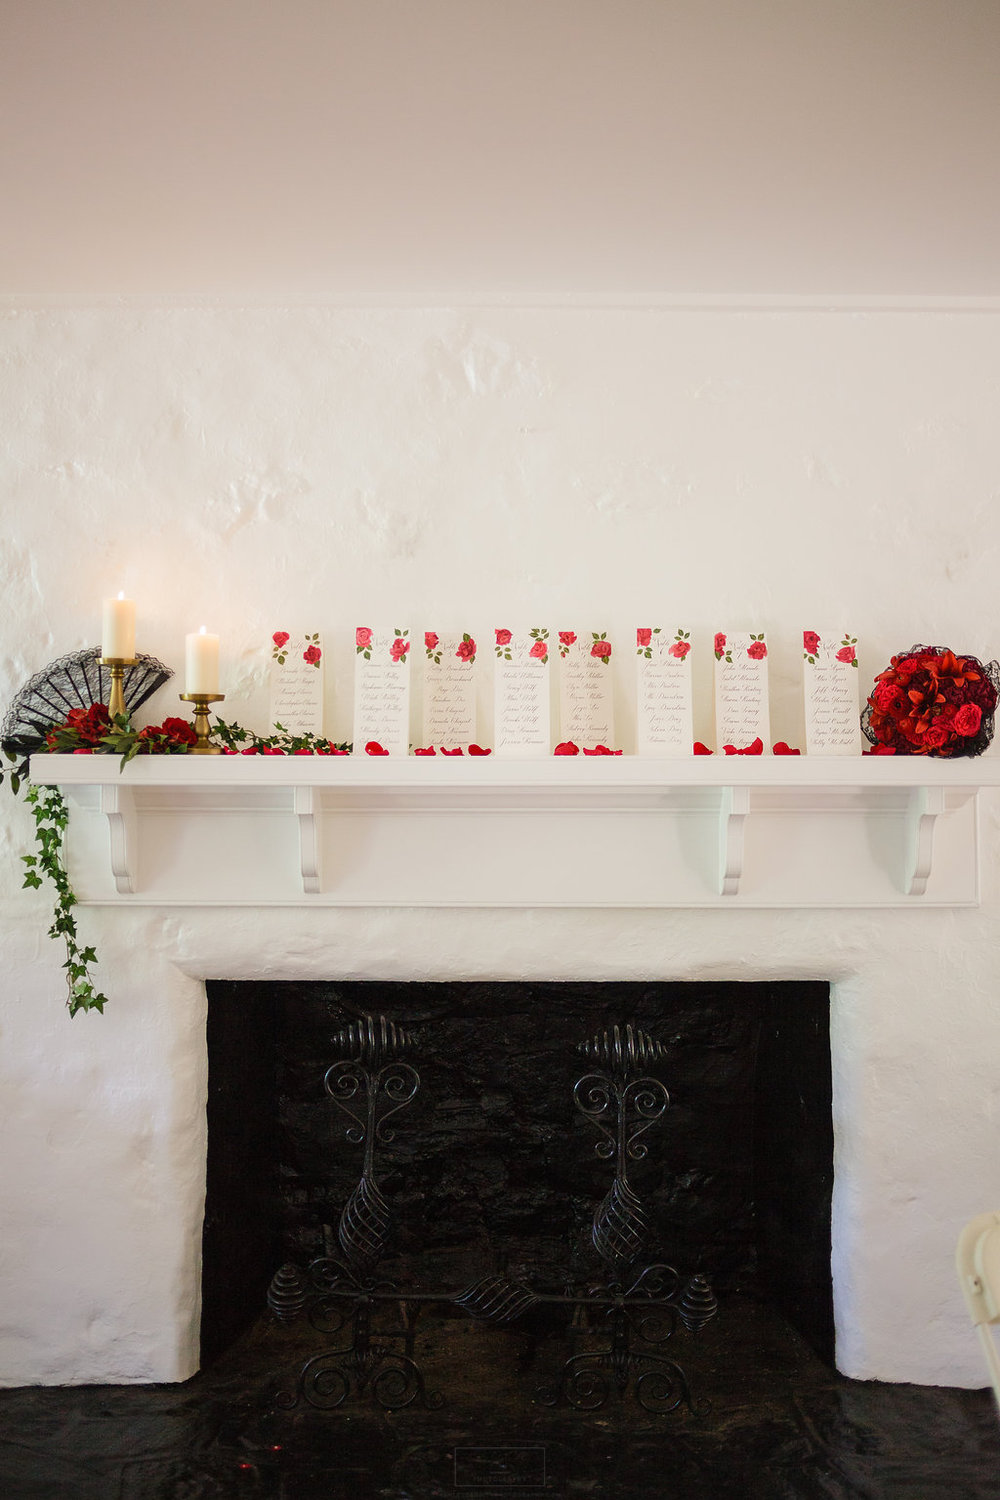 14 Spanish Rose Escort Card Wedding Mantel Decoration Philadelphia Wedding Planner Bolingbroke Mansion.jpg